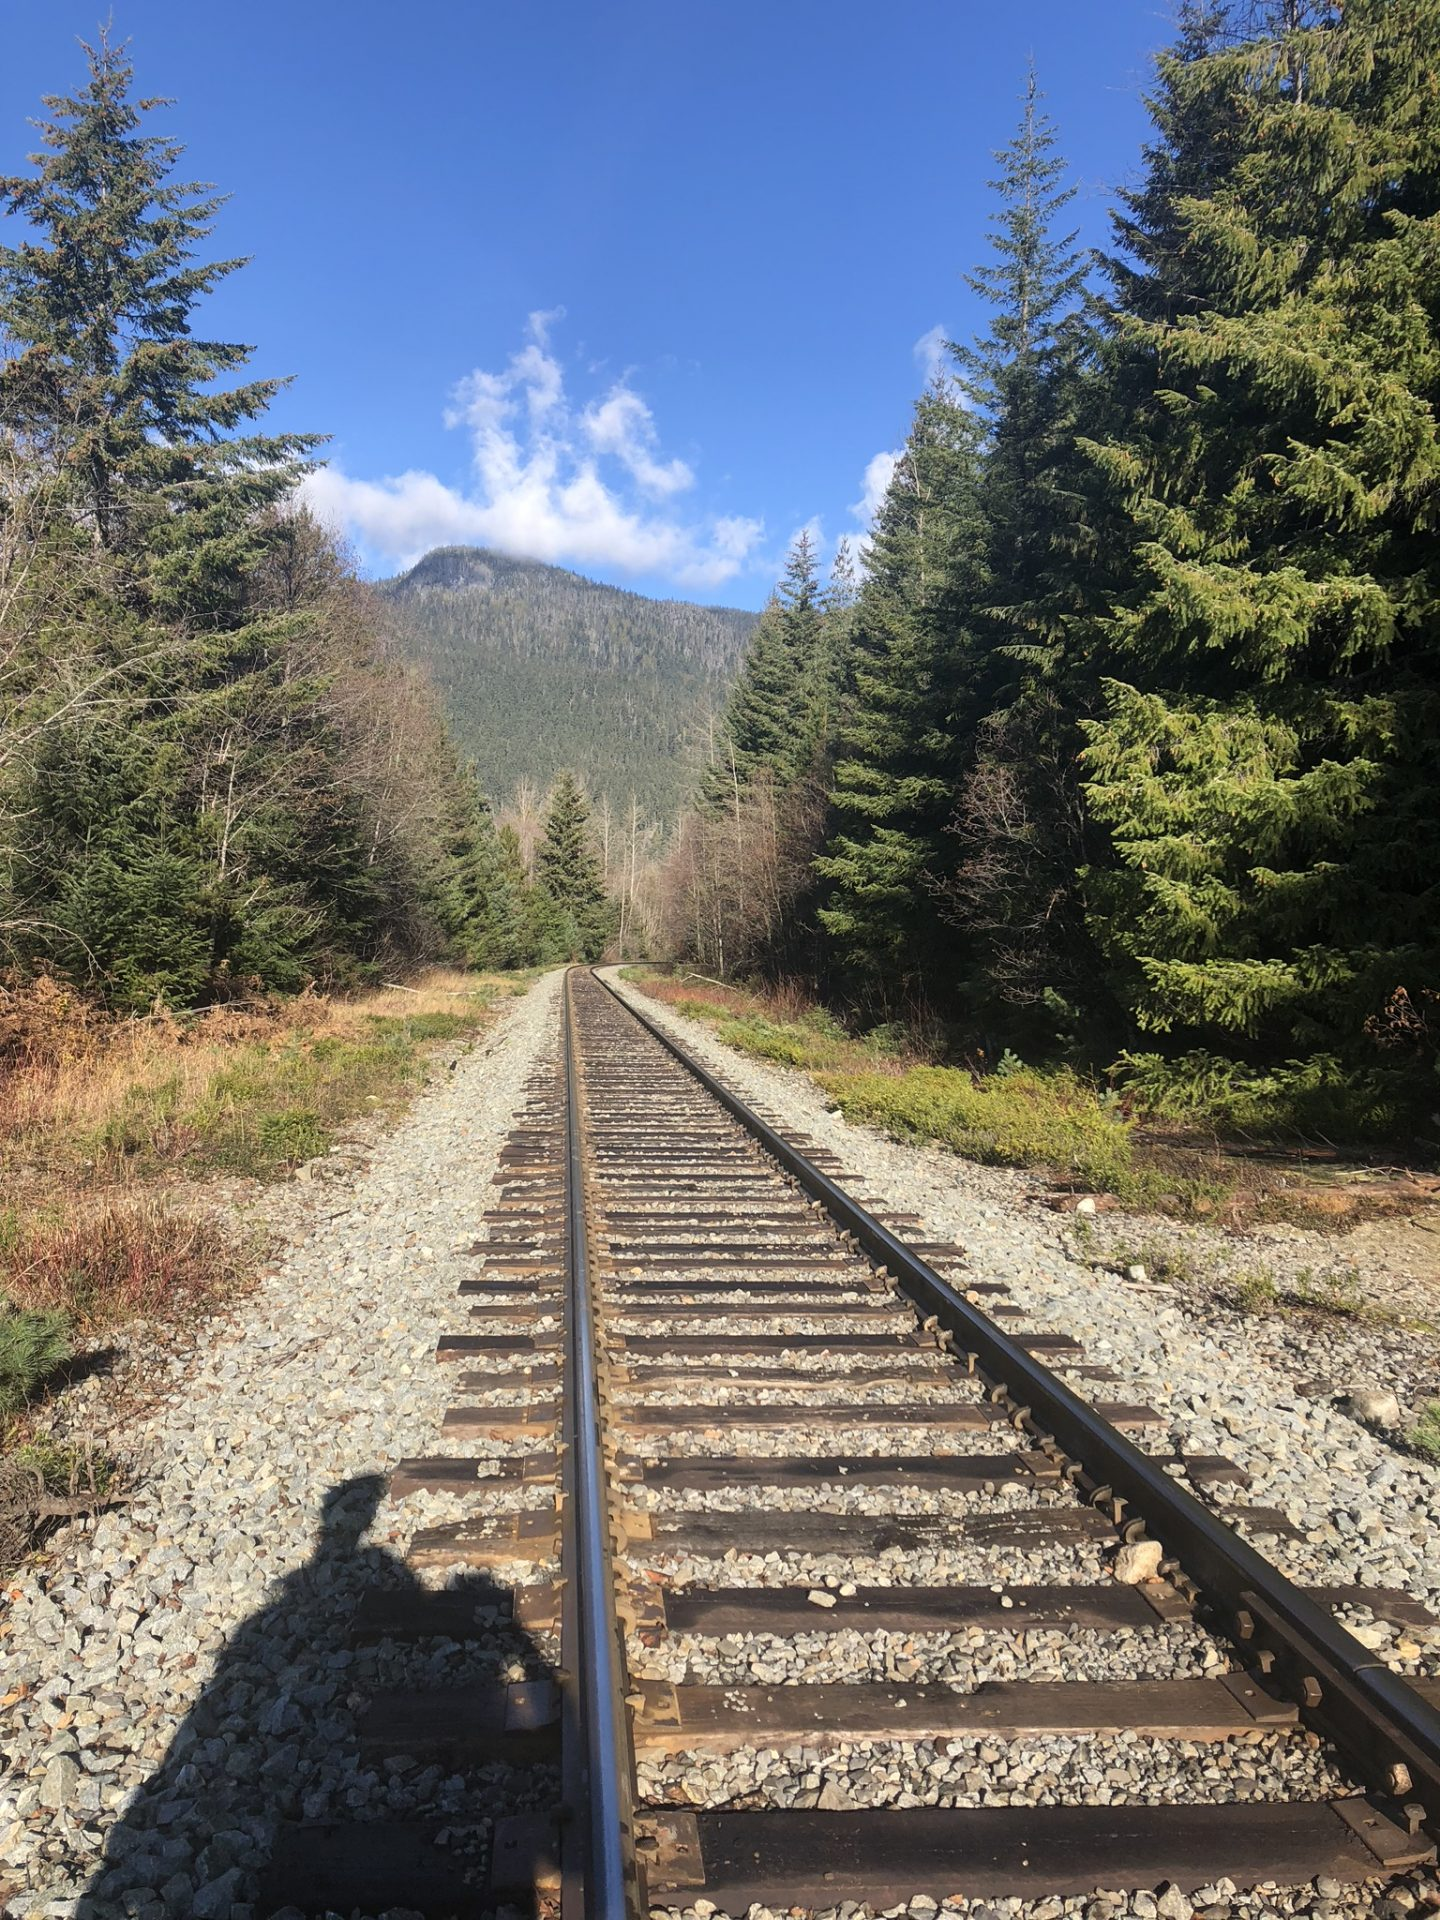 Train track near the mountains at Whistler, Canada